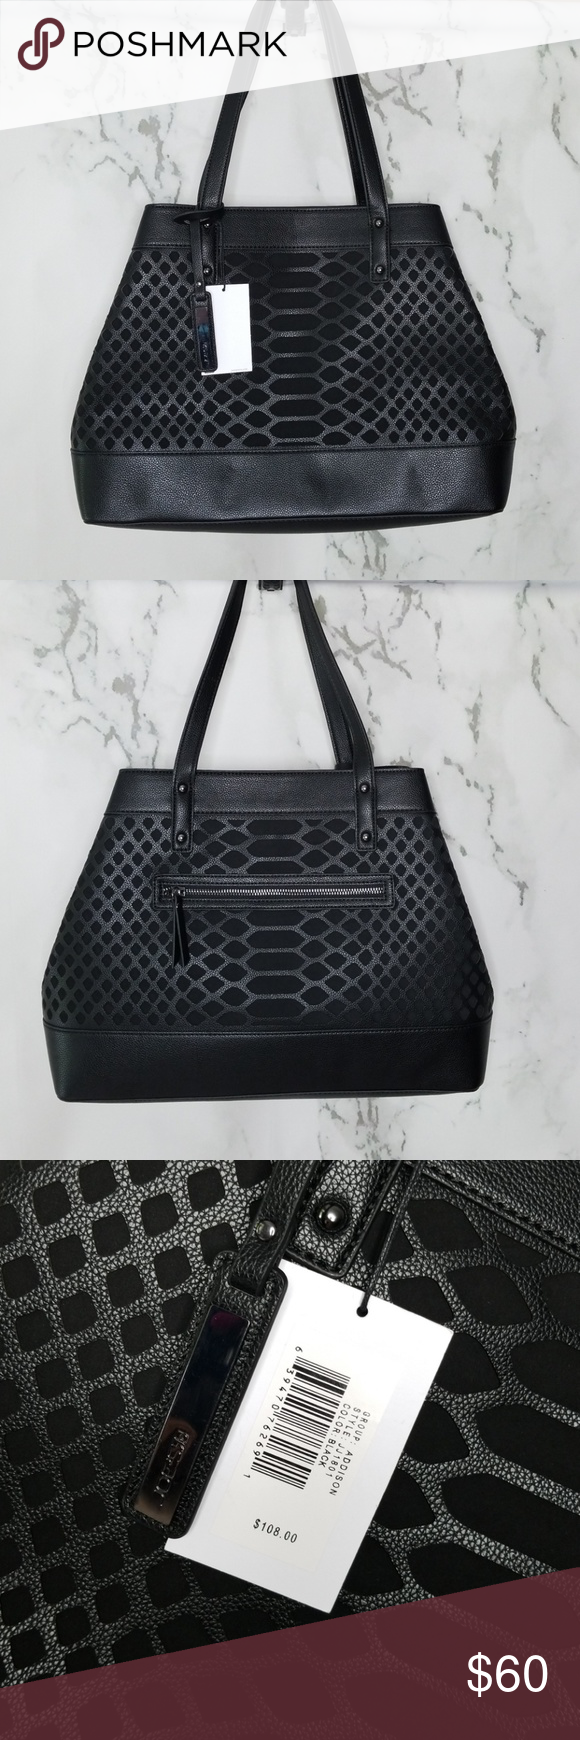 44daf0ccb218 Joe's Jeans Addison Black Tote Gorgeous laser cut black faux leather Addison  tote from Joe's Jeans